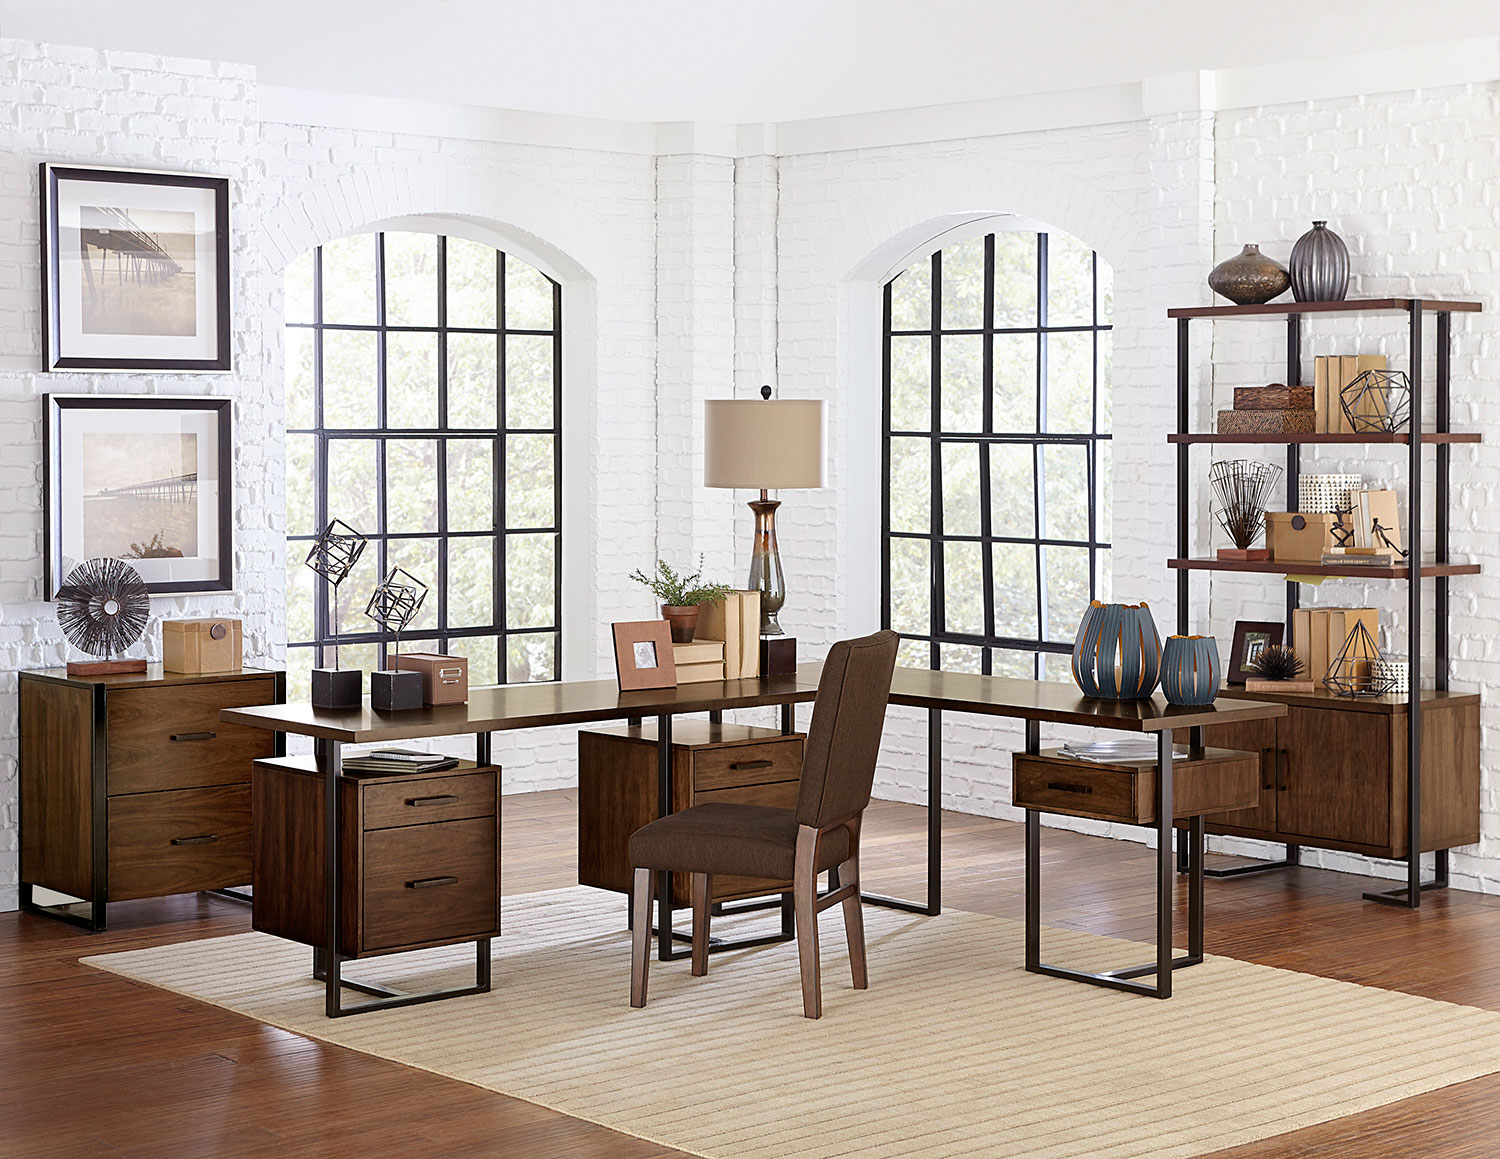 Beau Homelegance Sedley Home Office Set   Walnut